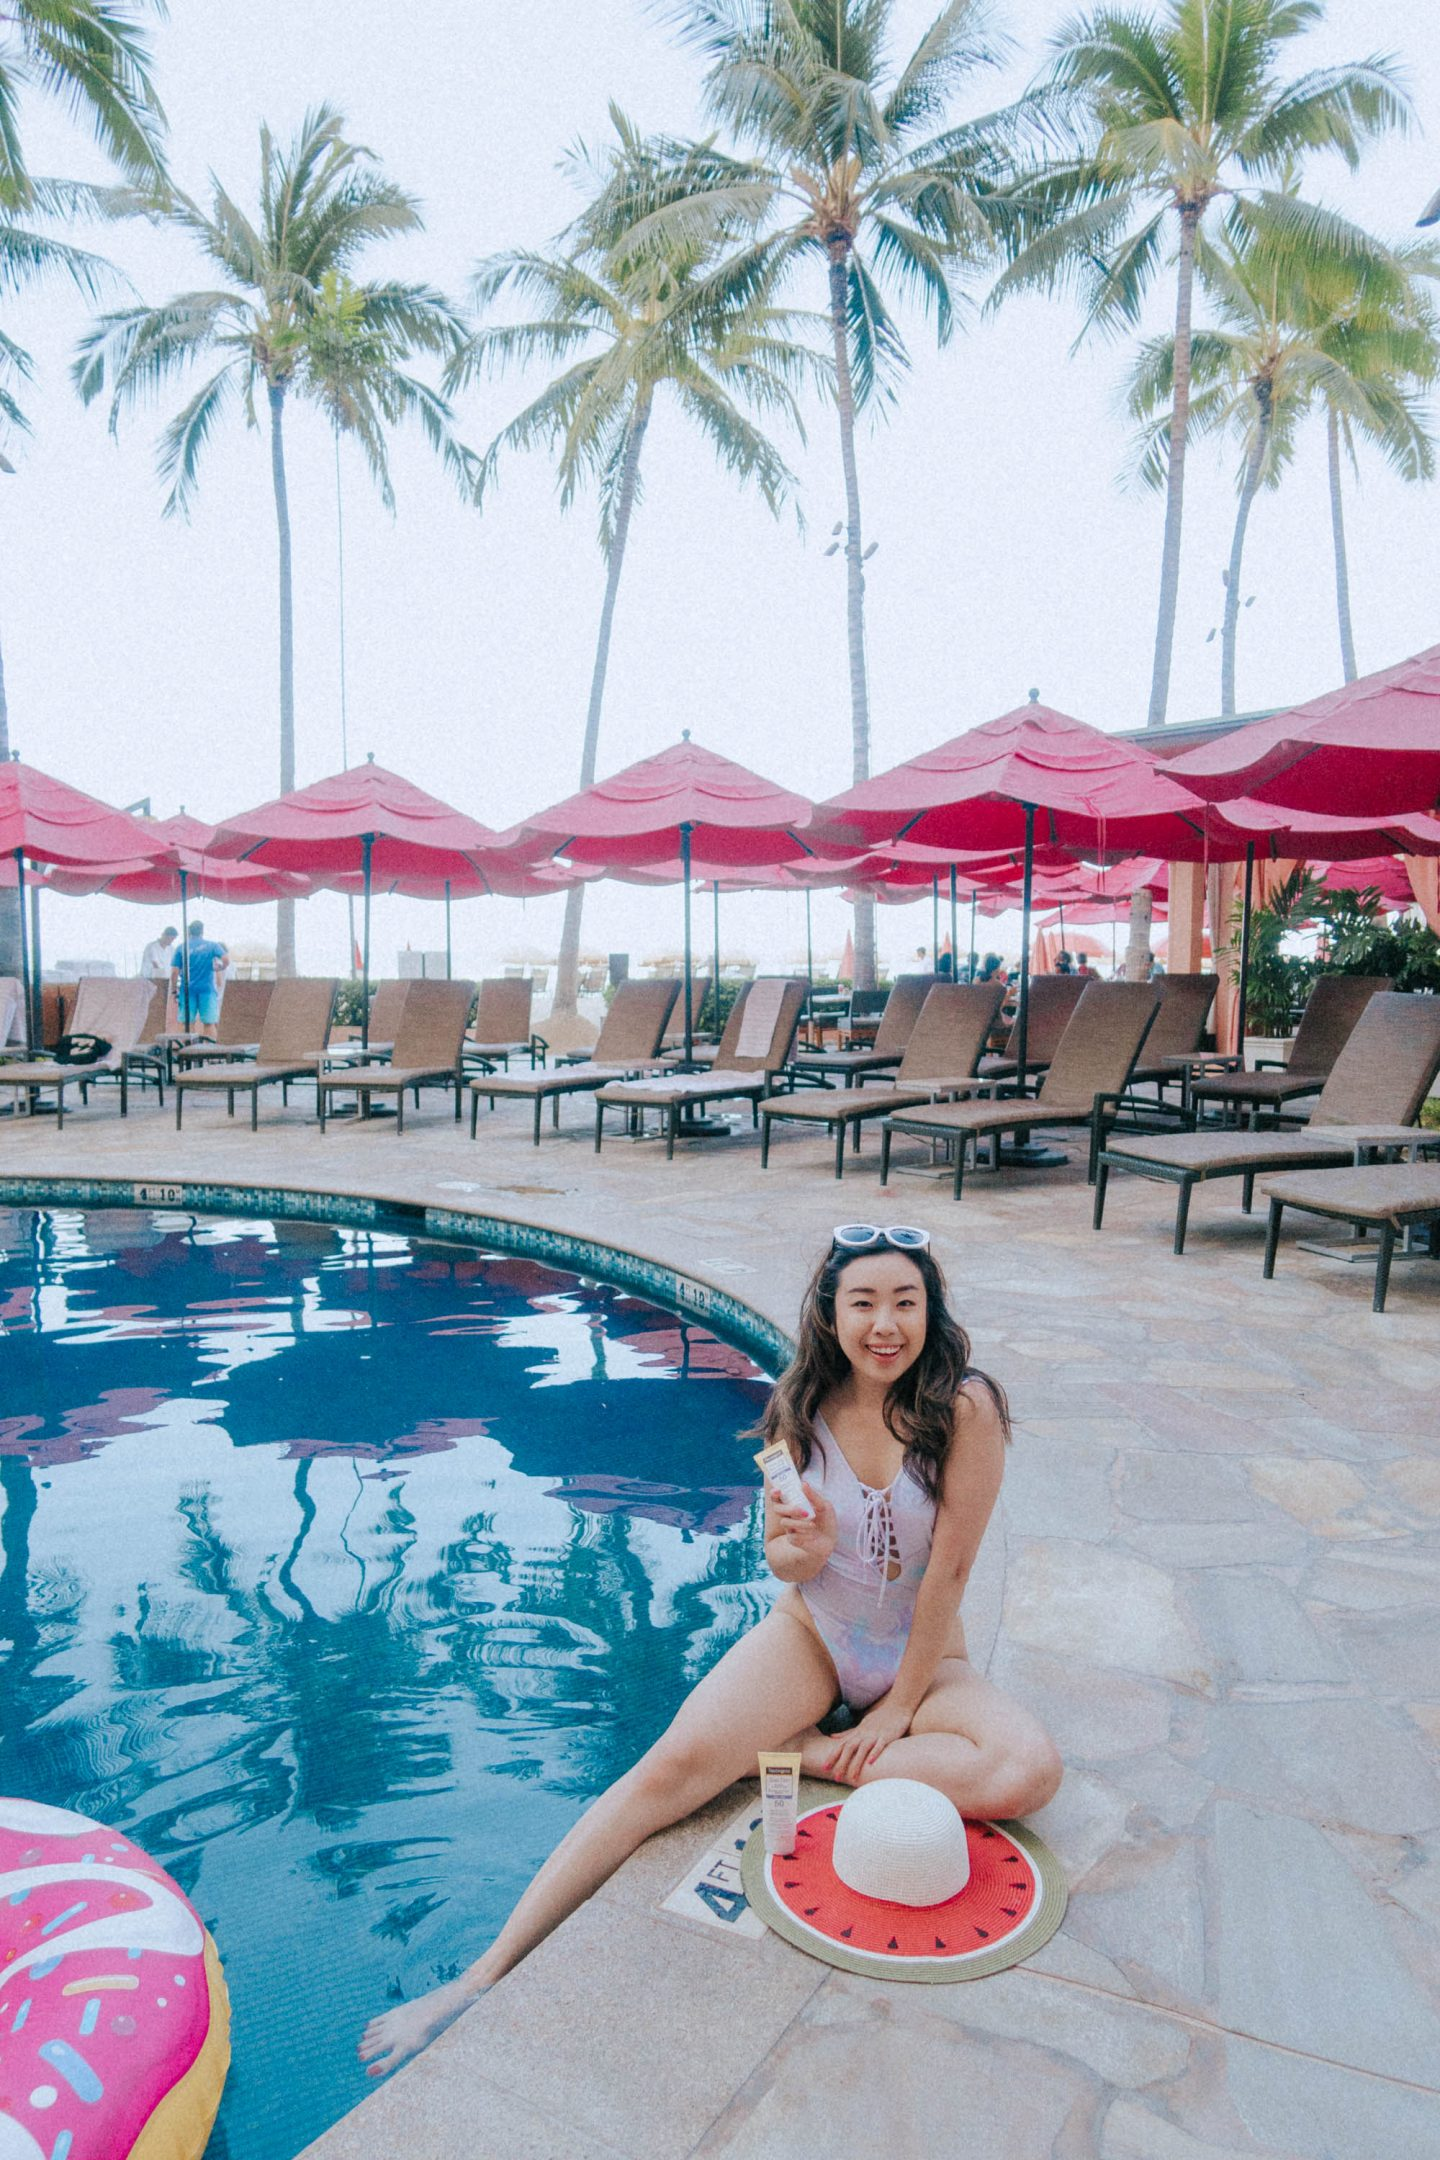 Using Neutrogena's Sheer Zinc Mineral Sunscreen to protect my skin poolside